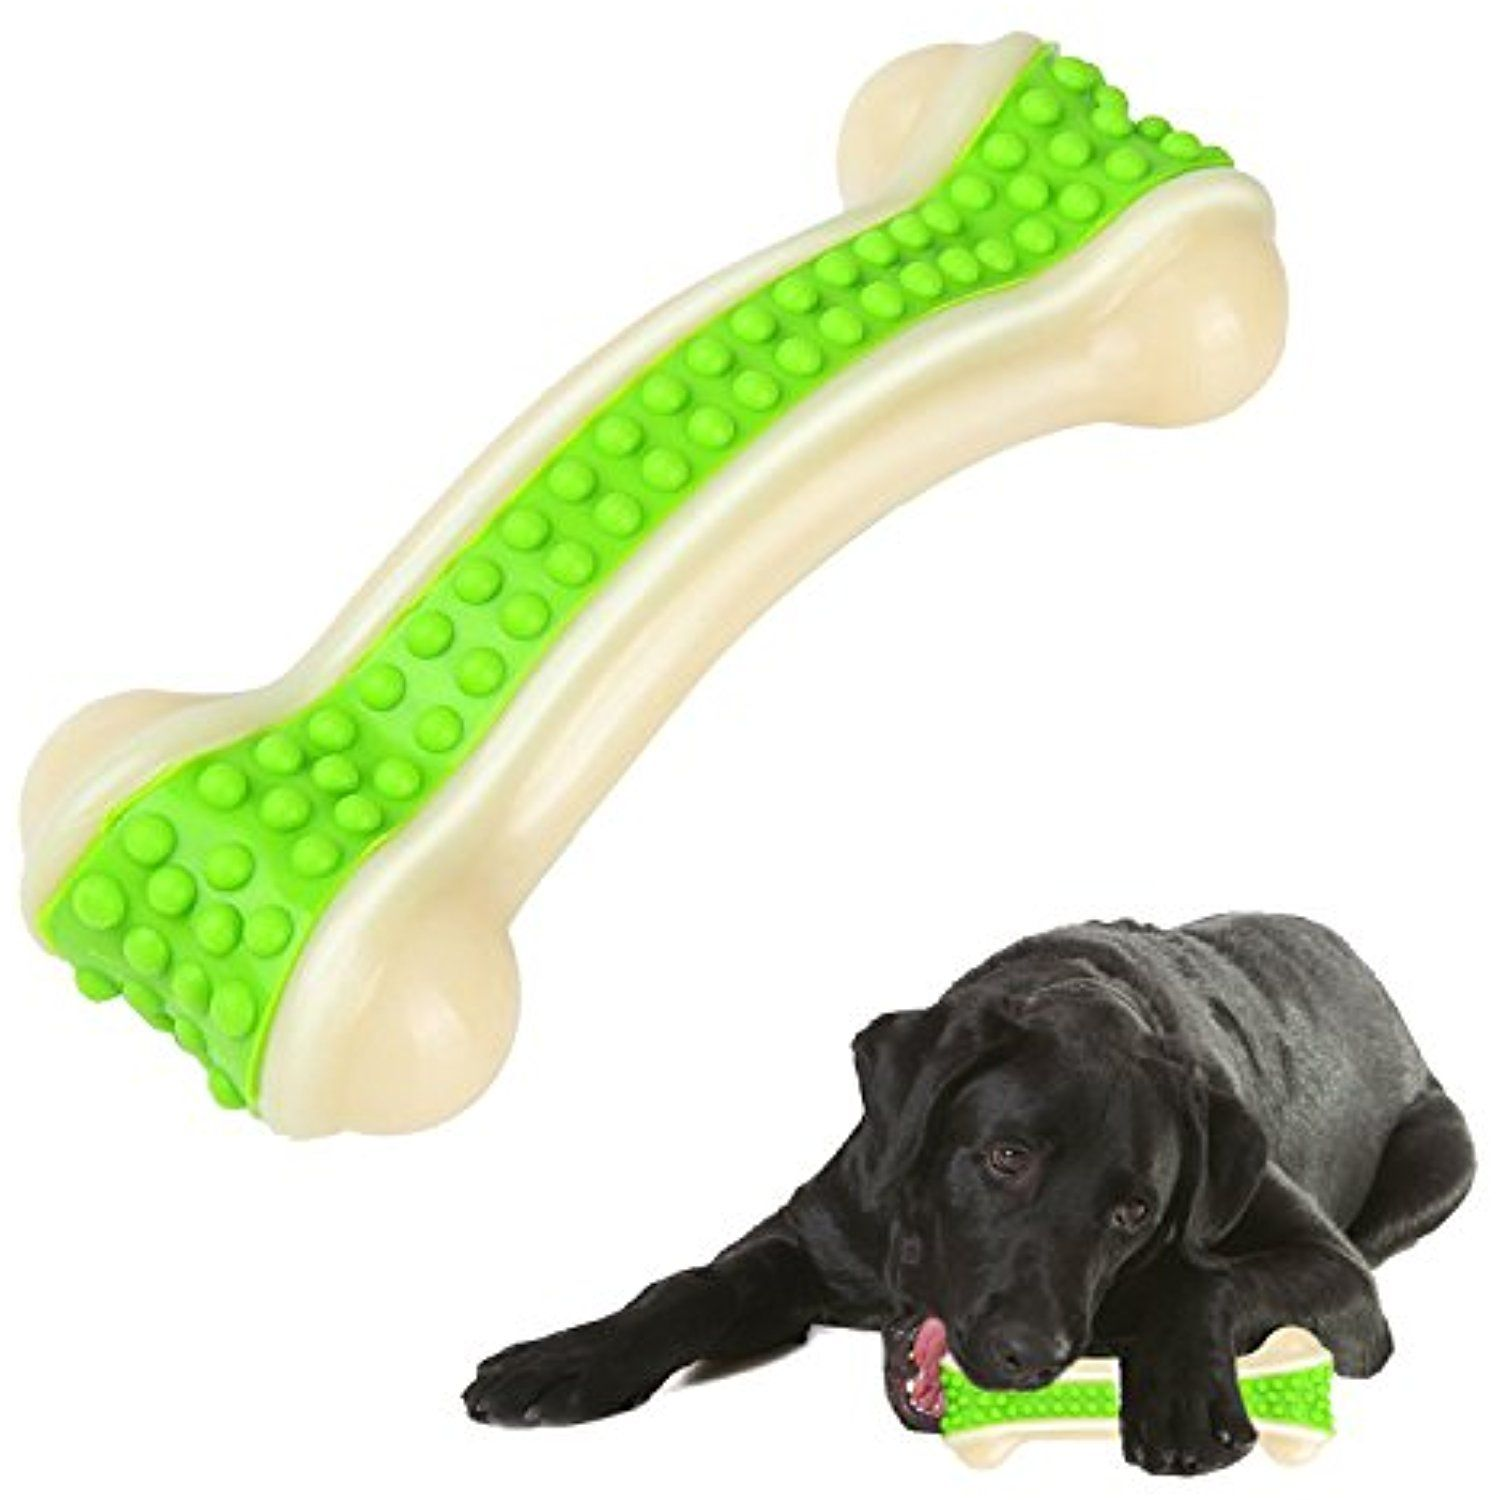 Bwogue Durable Dog Chew Toys,Guaranteed Tough Solid Bone Chew Toy ... | Dog Chew Toys That Last